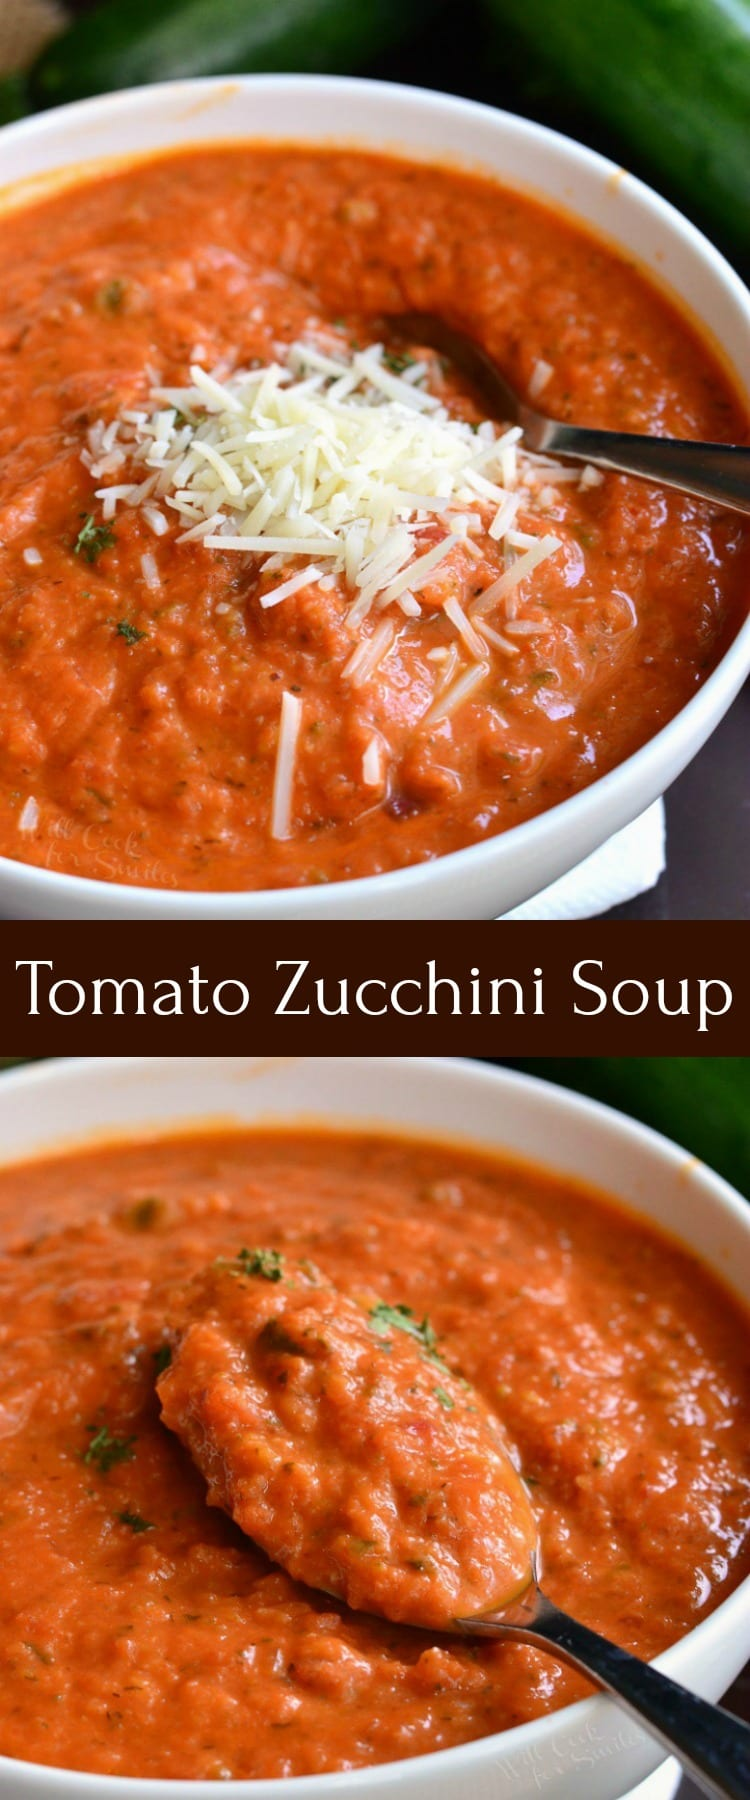 Zucchini Tomato Soup Recipe. Delightful, comforting, and easy tomato soup made with addition of fresh zucchini. It's creamy and made with some fresh grated Parmesan cheese. Serve it with some grilled cheese sticks for a fun lunch. #soup #tomatosoup #zucchini #zucchinisoup #vegetablesoup